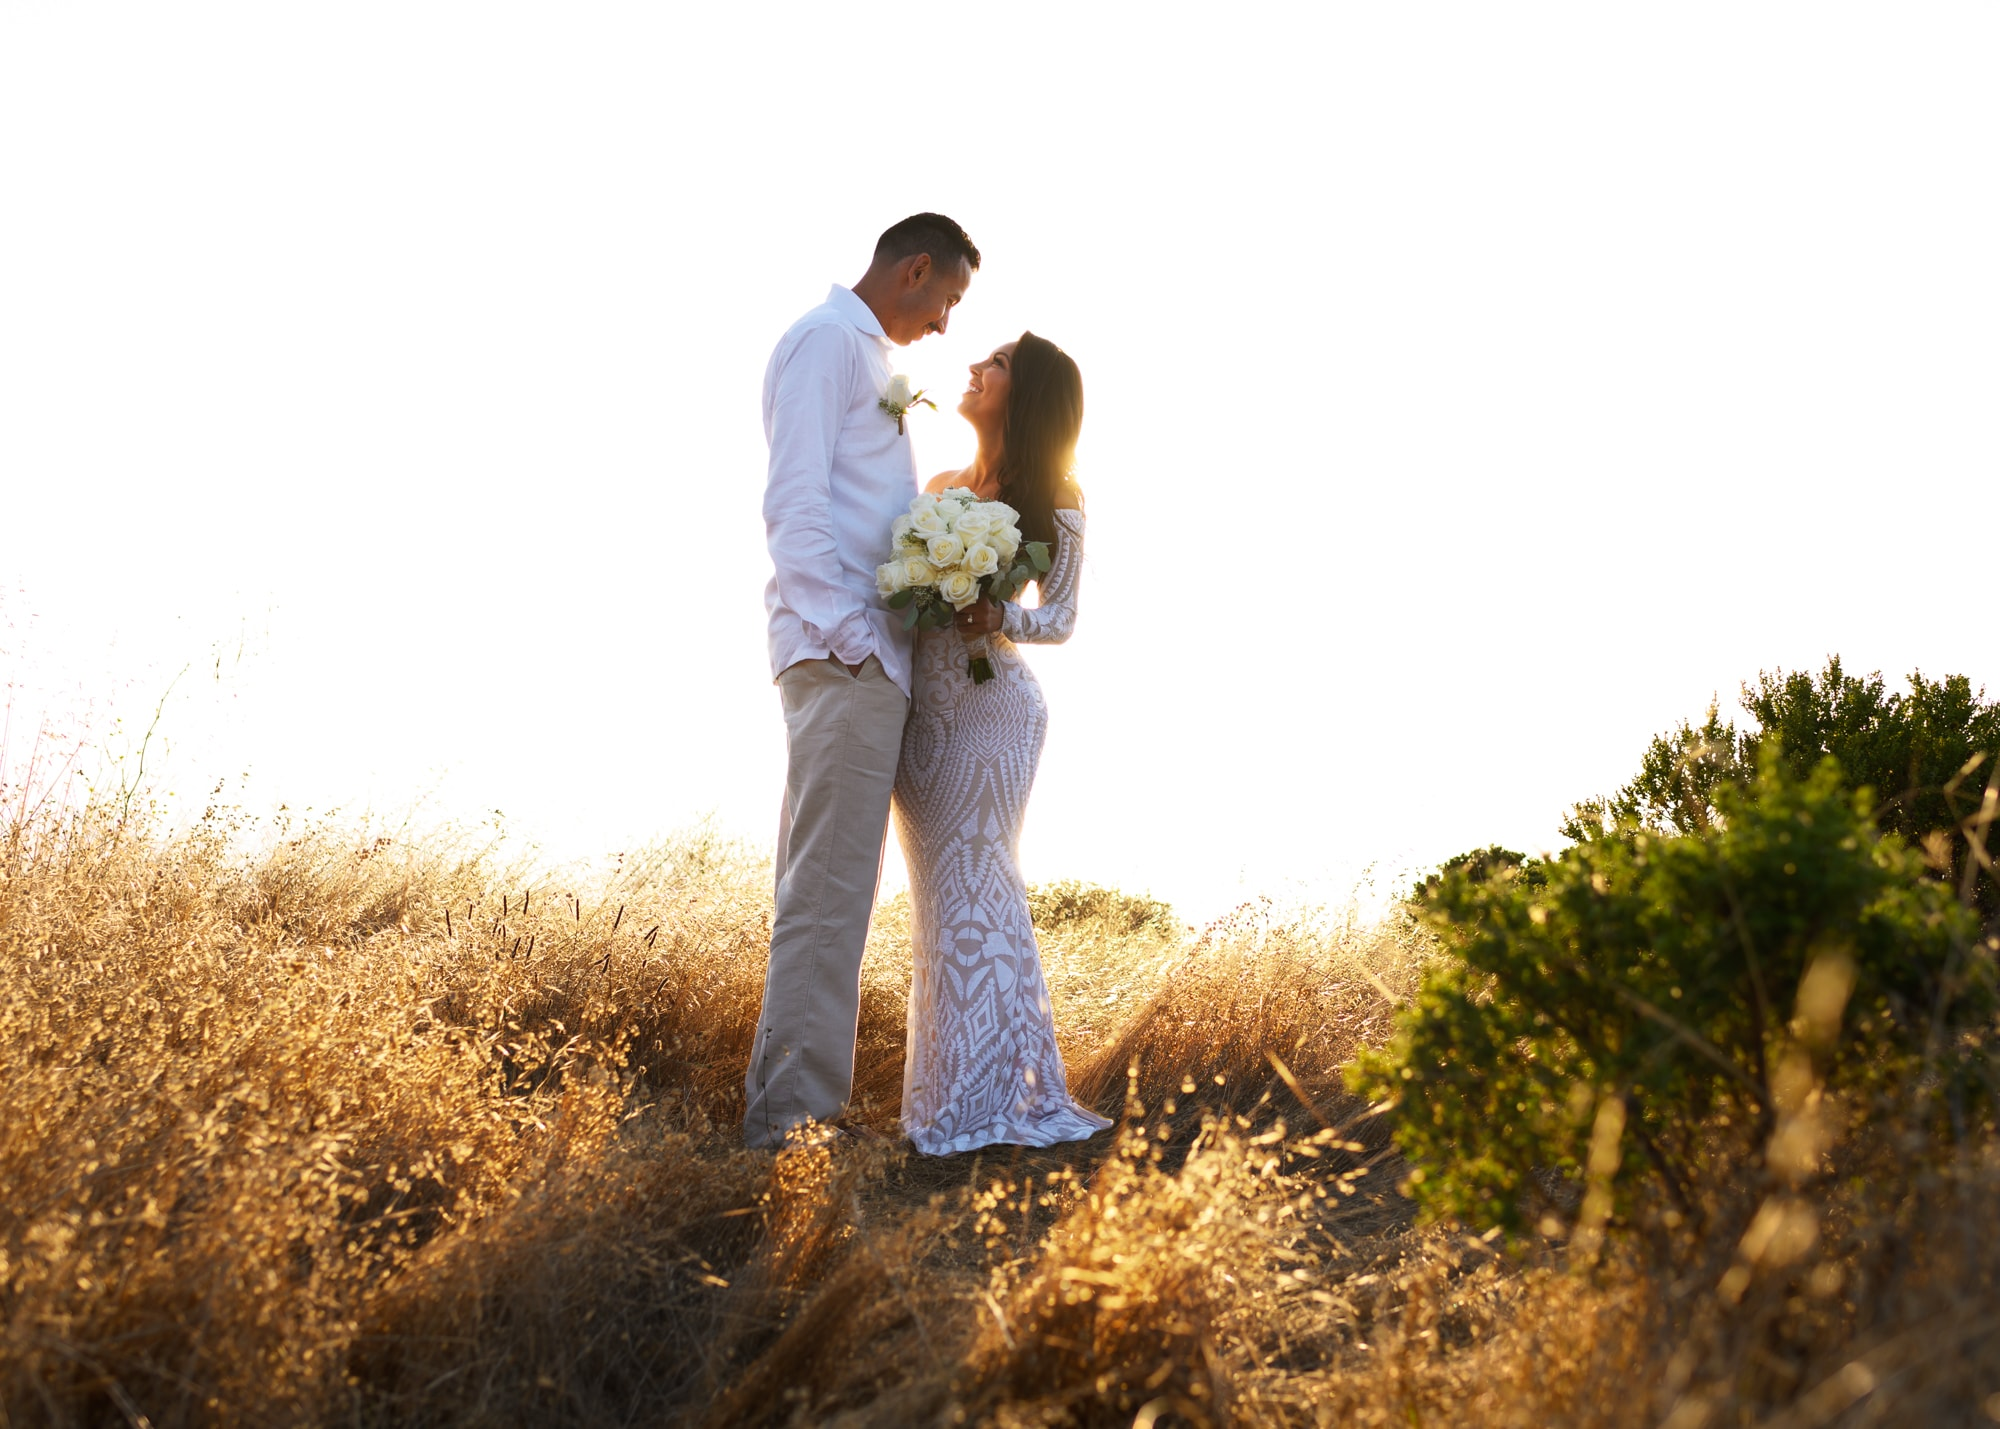 Monterey Bay elopement photo taken in Carmel-by-theSea